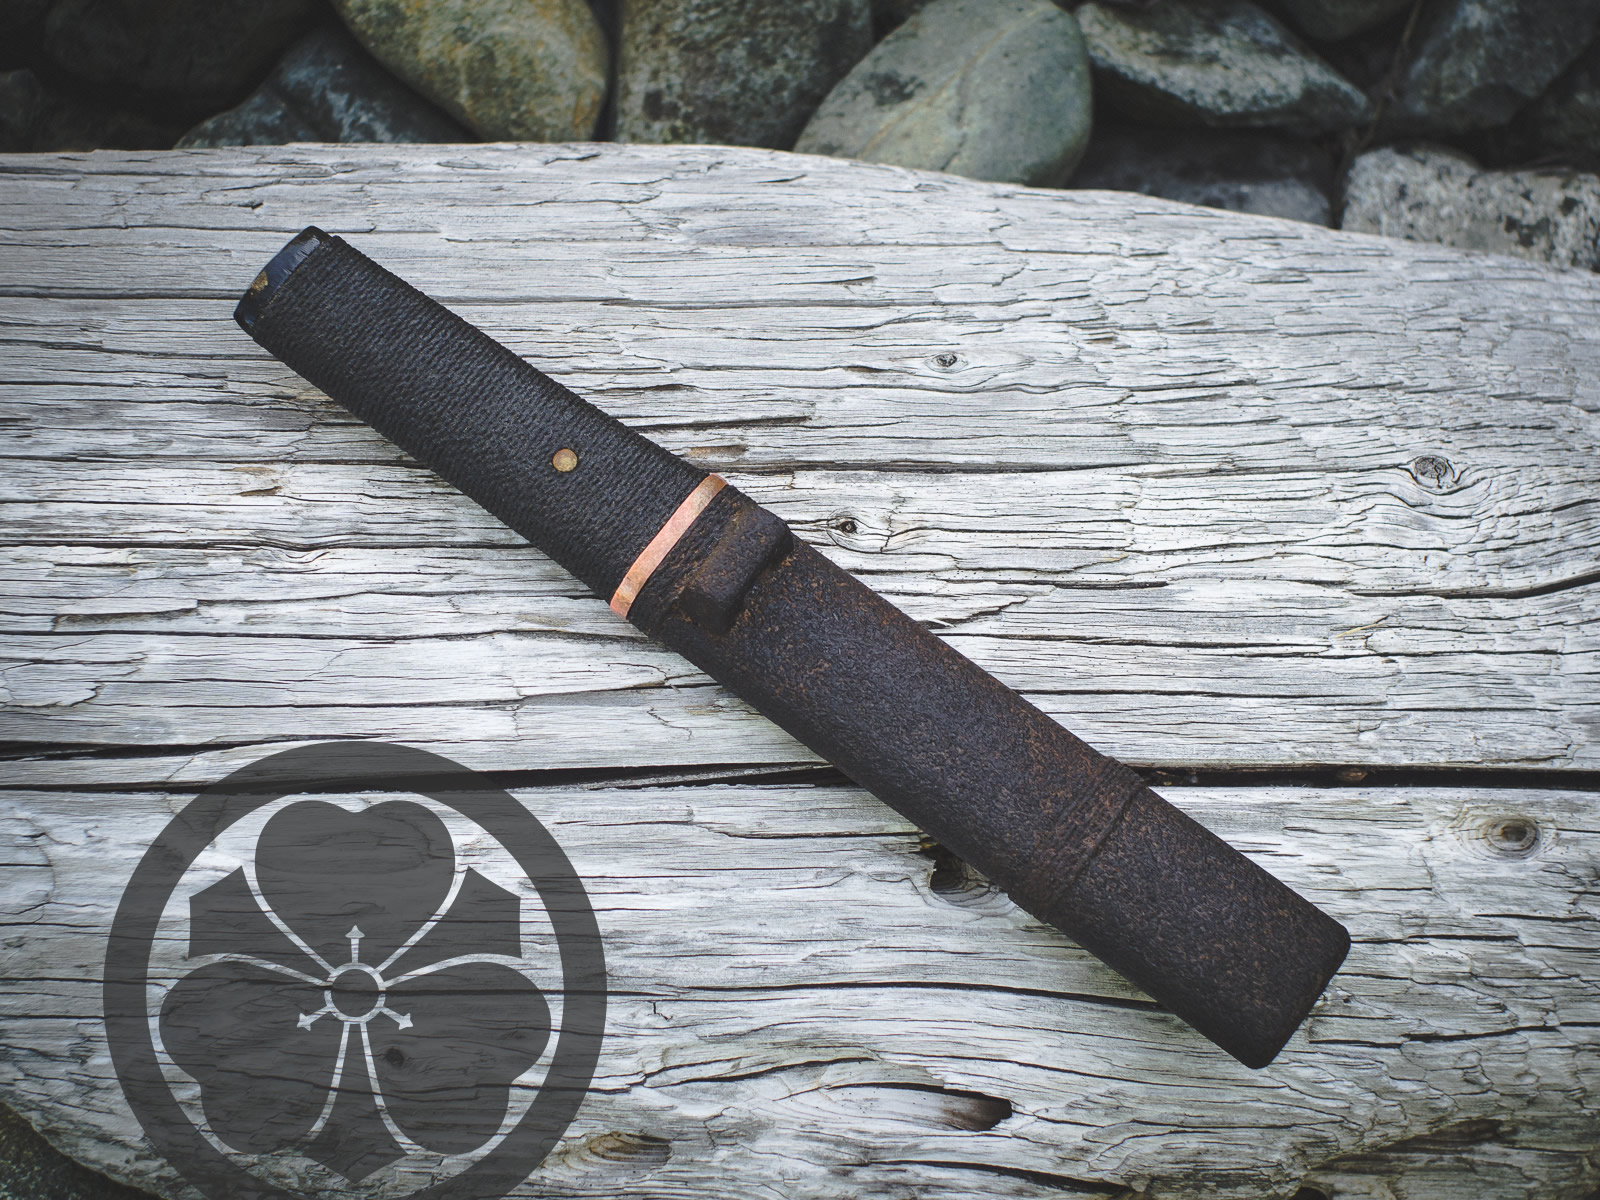 Island Blacksmith: Charcoal forged knives reclaimed from farm equipment.